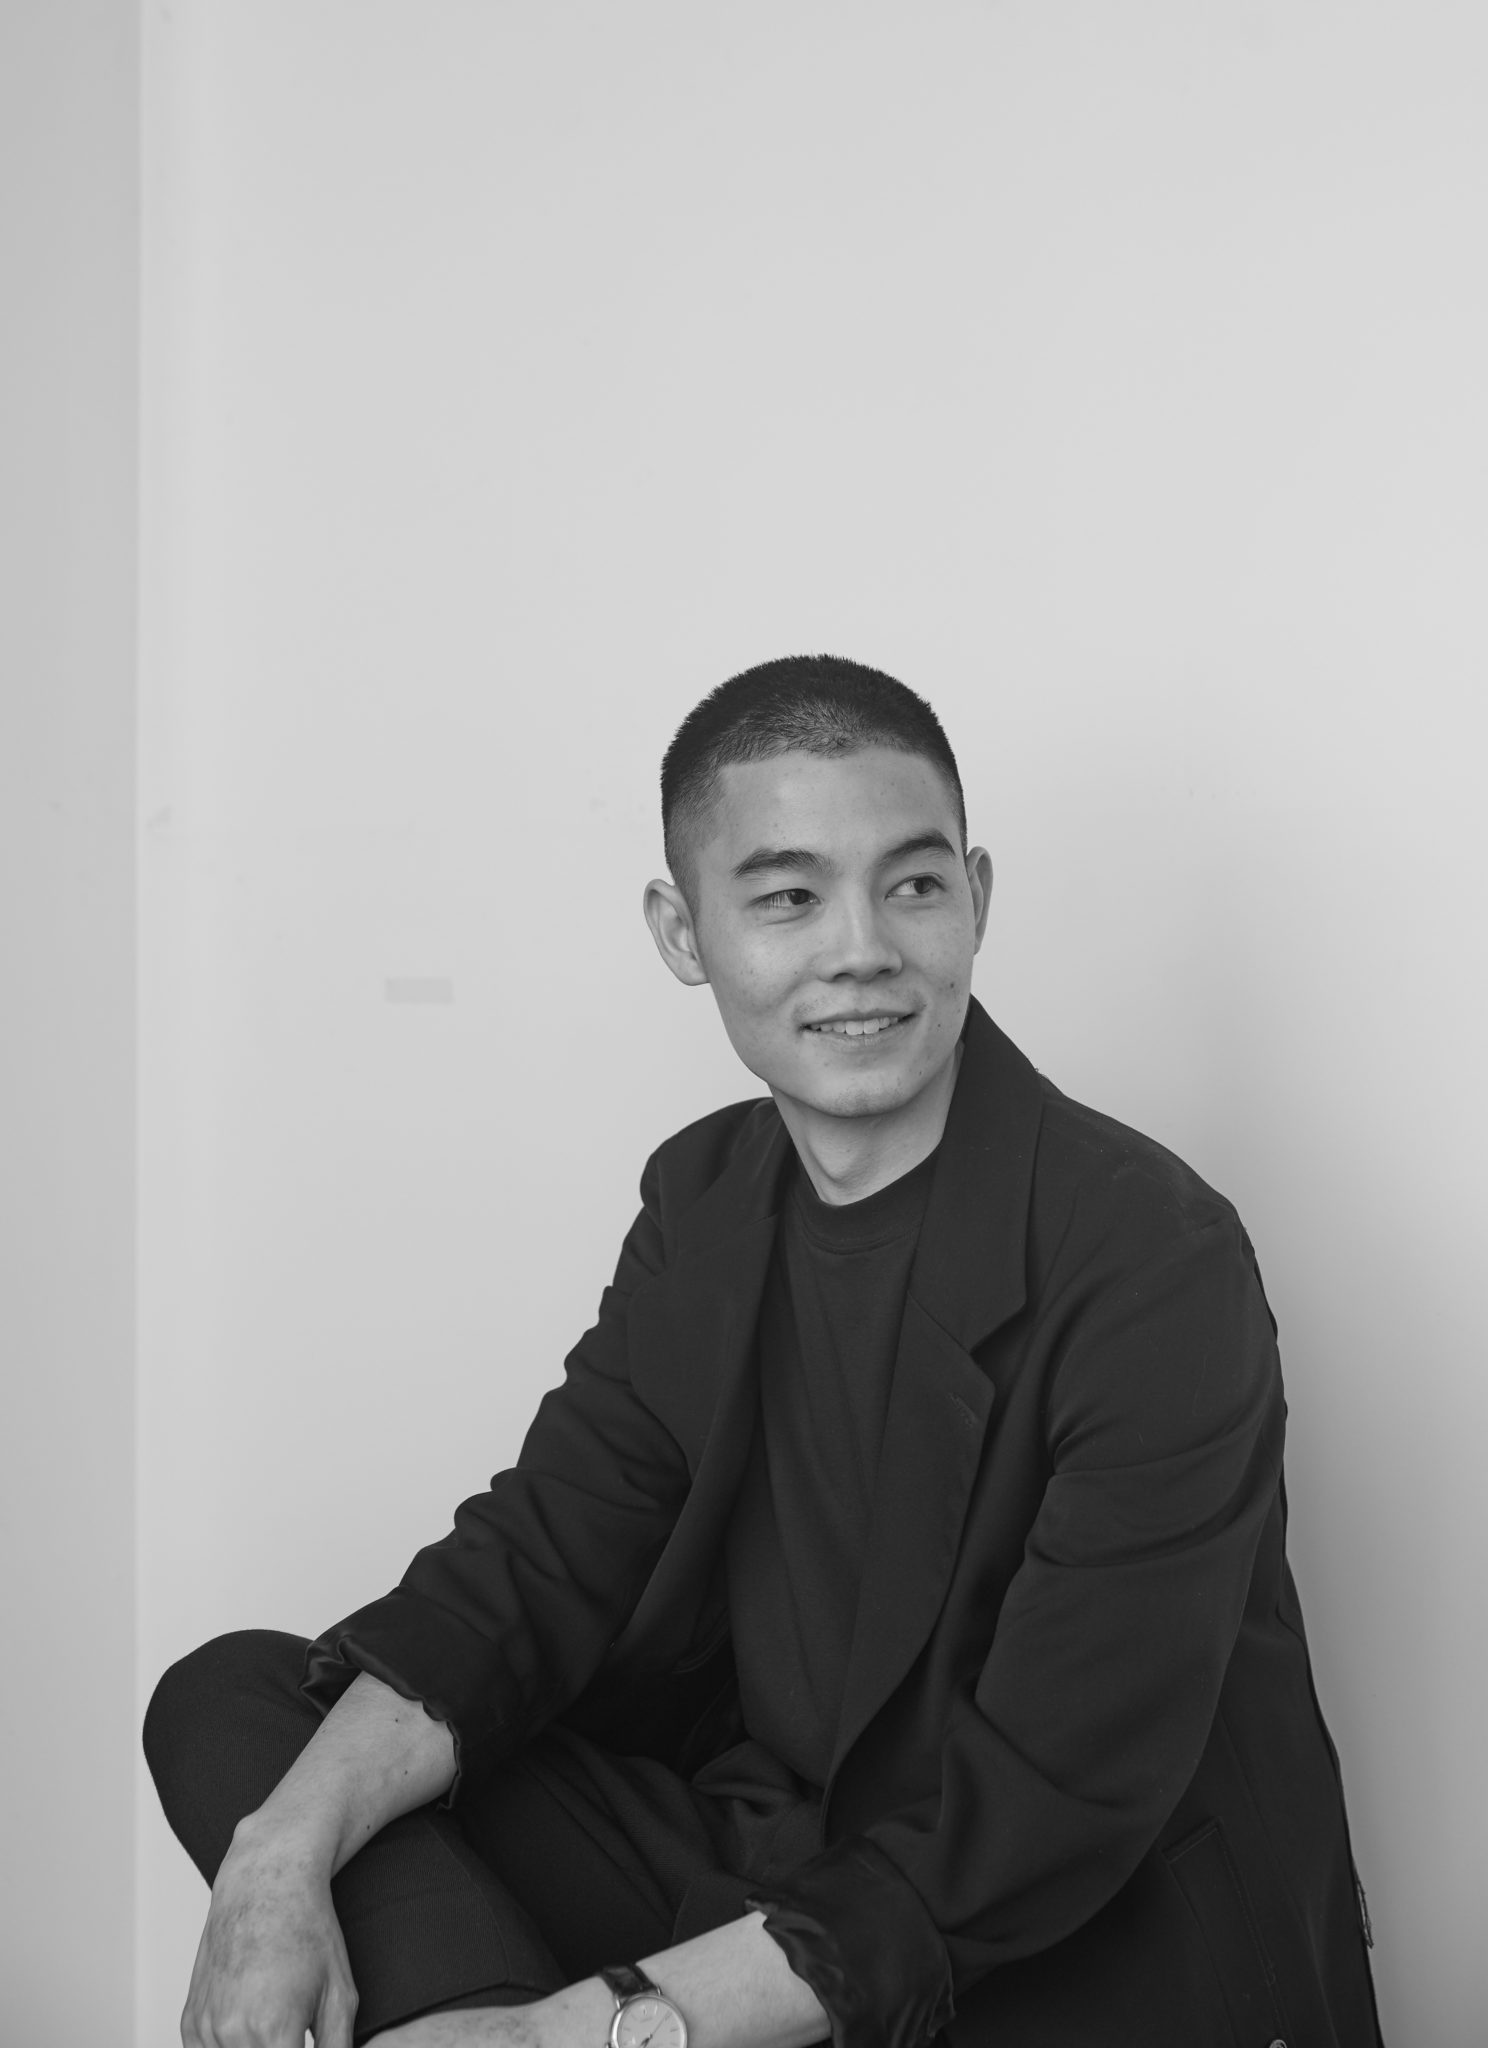 Song for the Mute's Melvin Tanaya on life during isolation